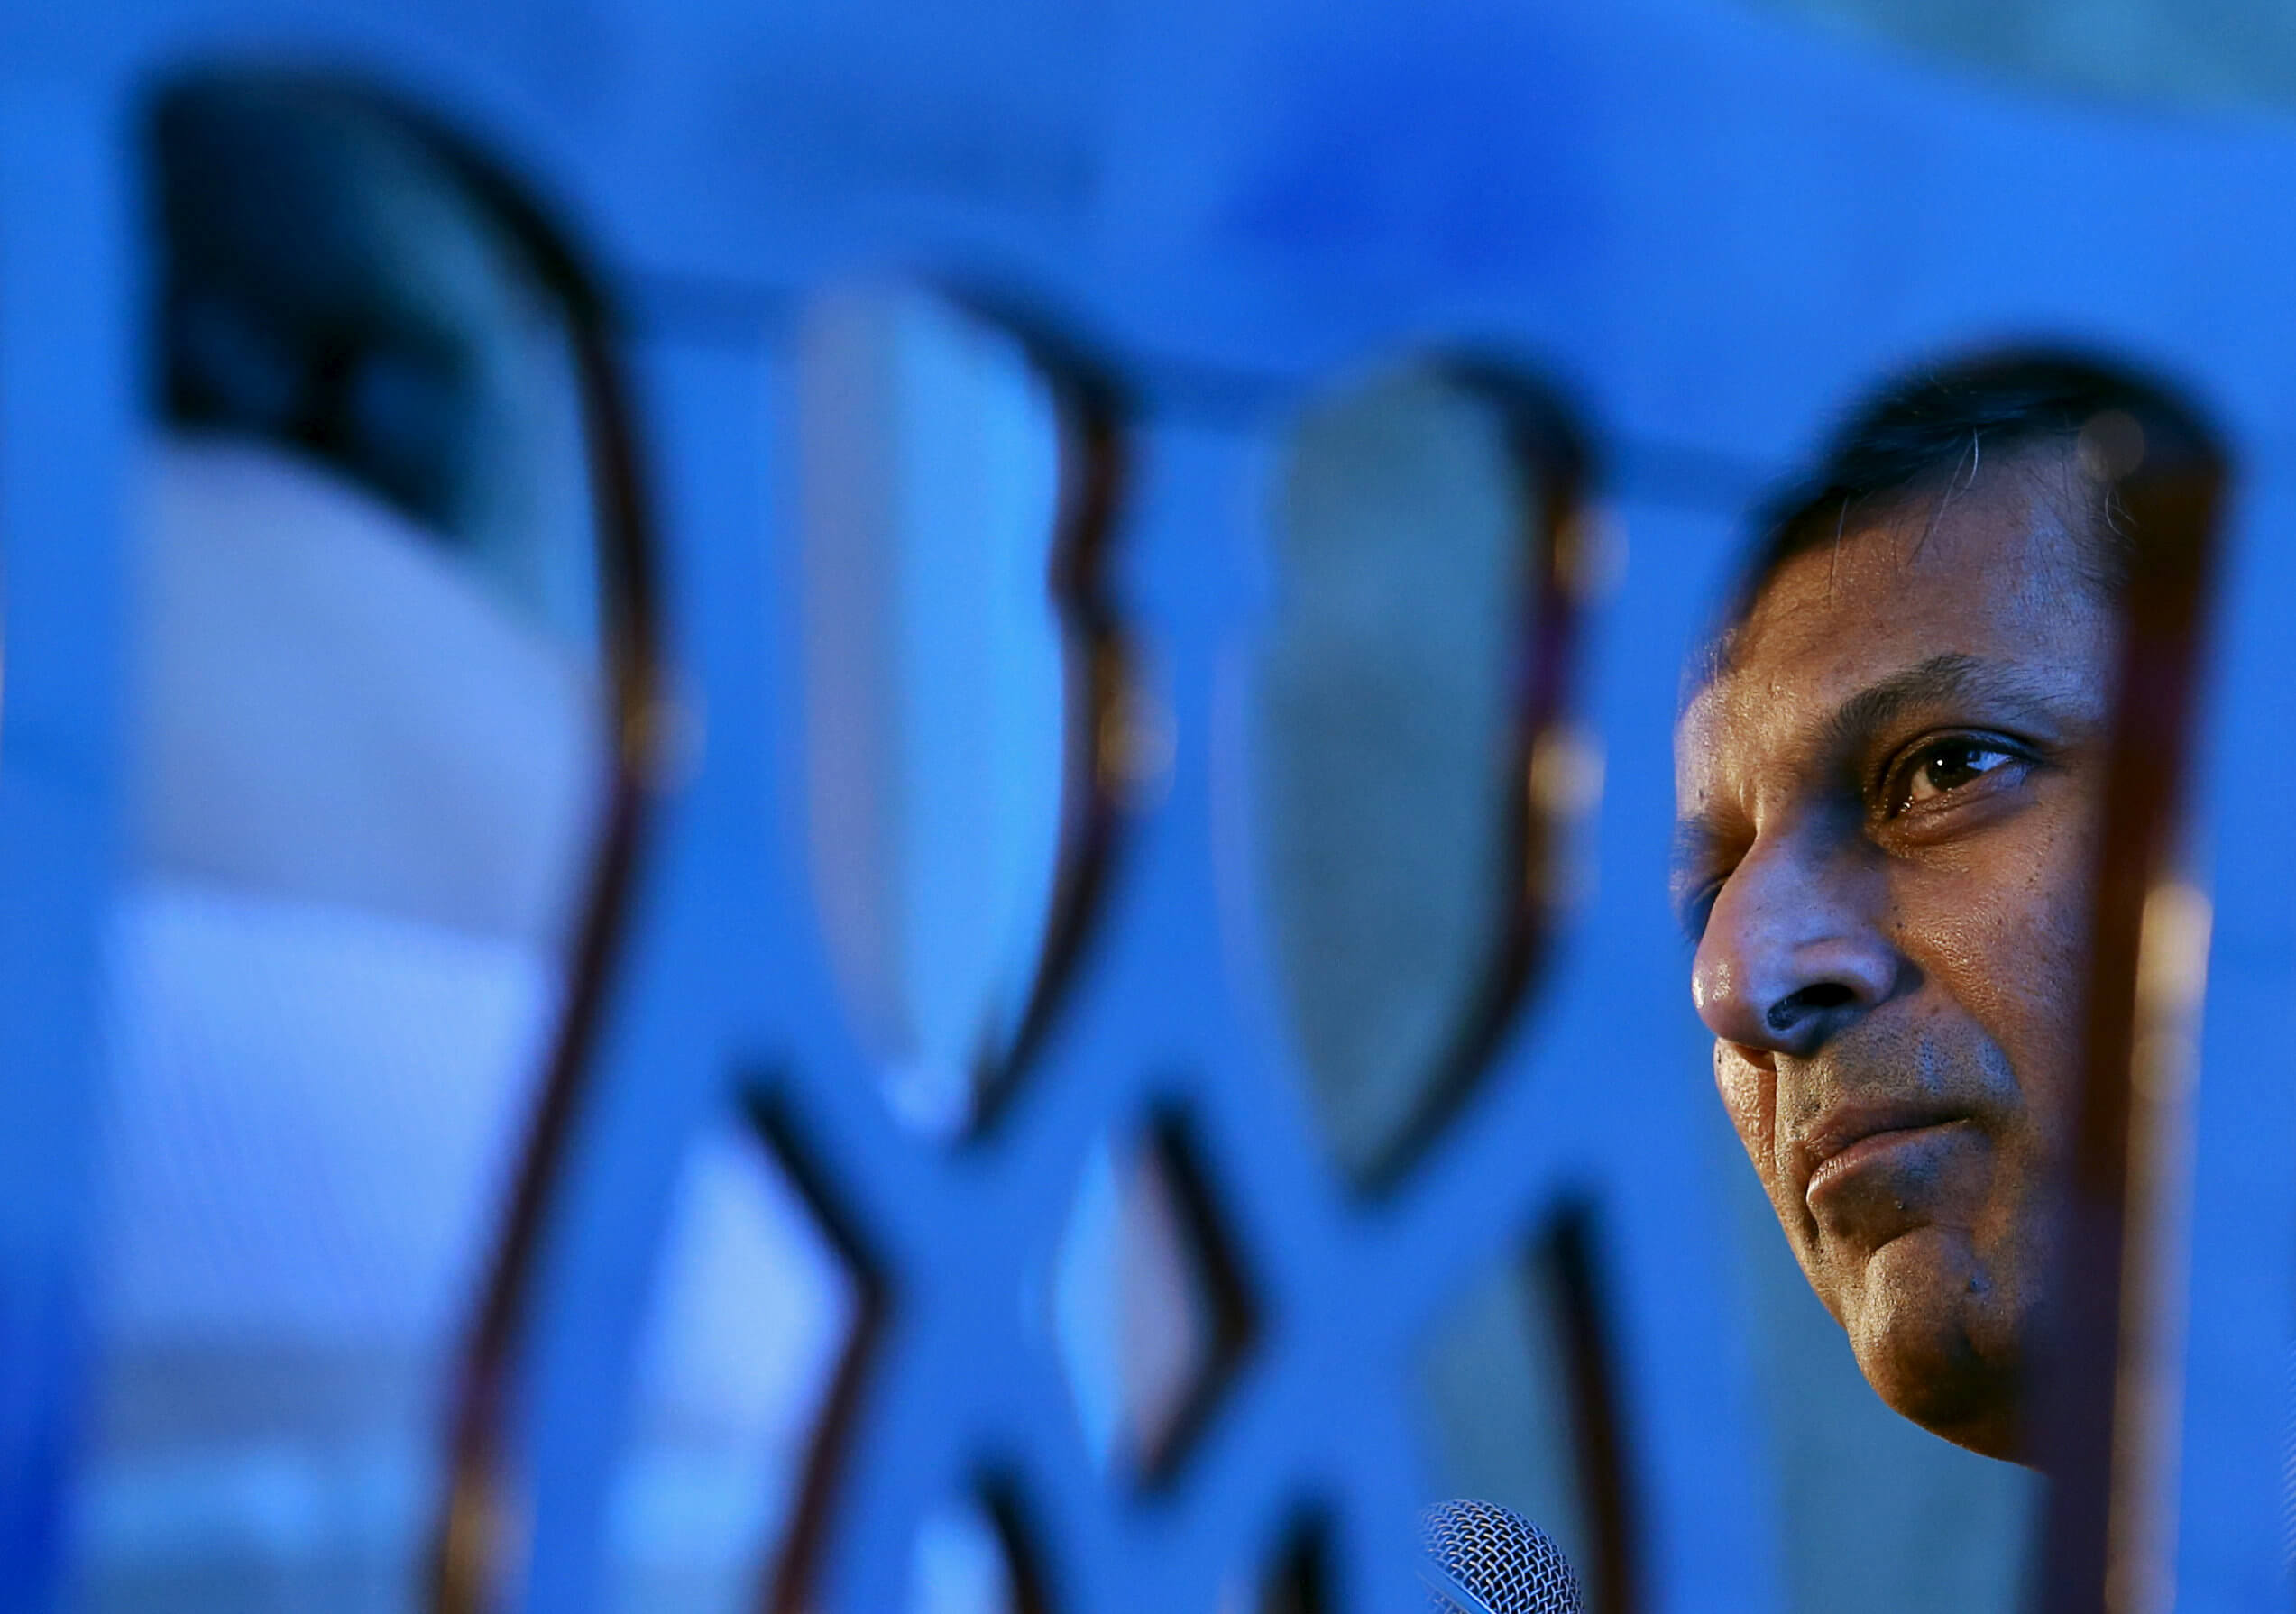 Reserve Bank of India (RBI) Governor Raghuram Rajan attends an industry event in Mumbai, India, August 20, 2015. REUTERS/Danish Siddiqui/File Photo